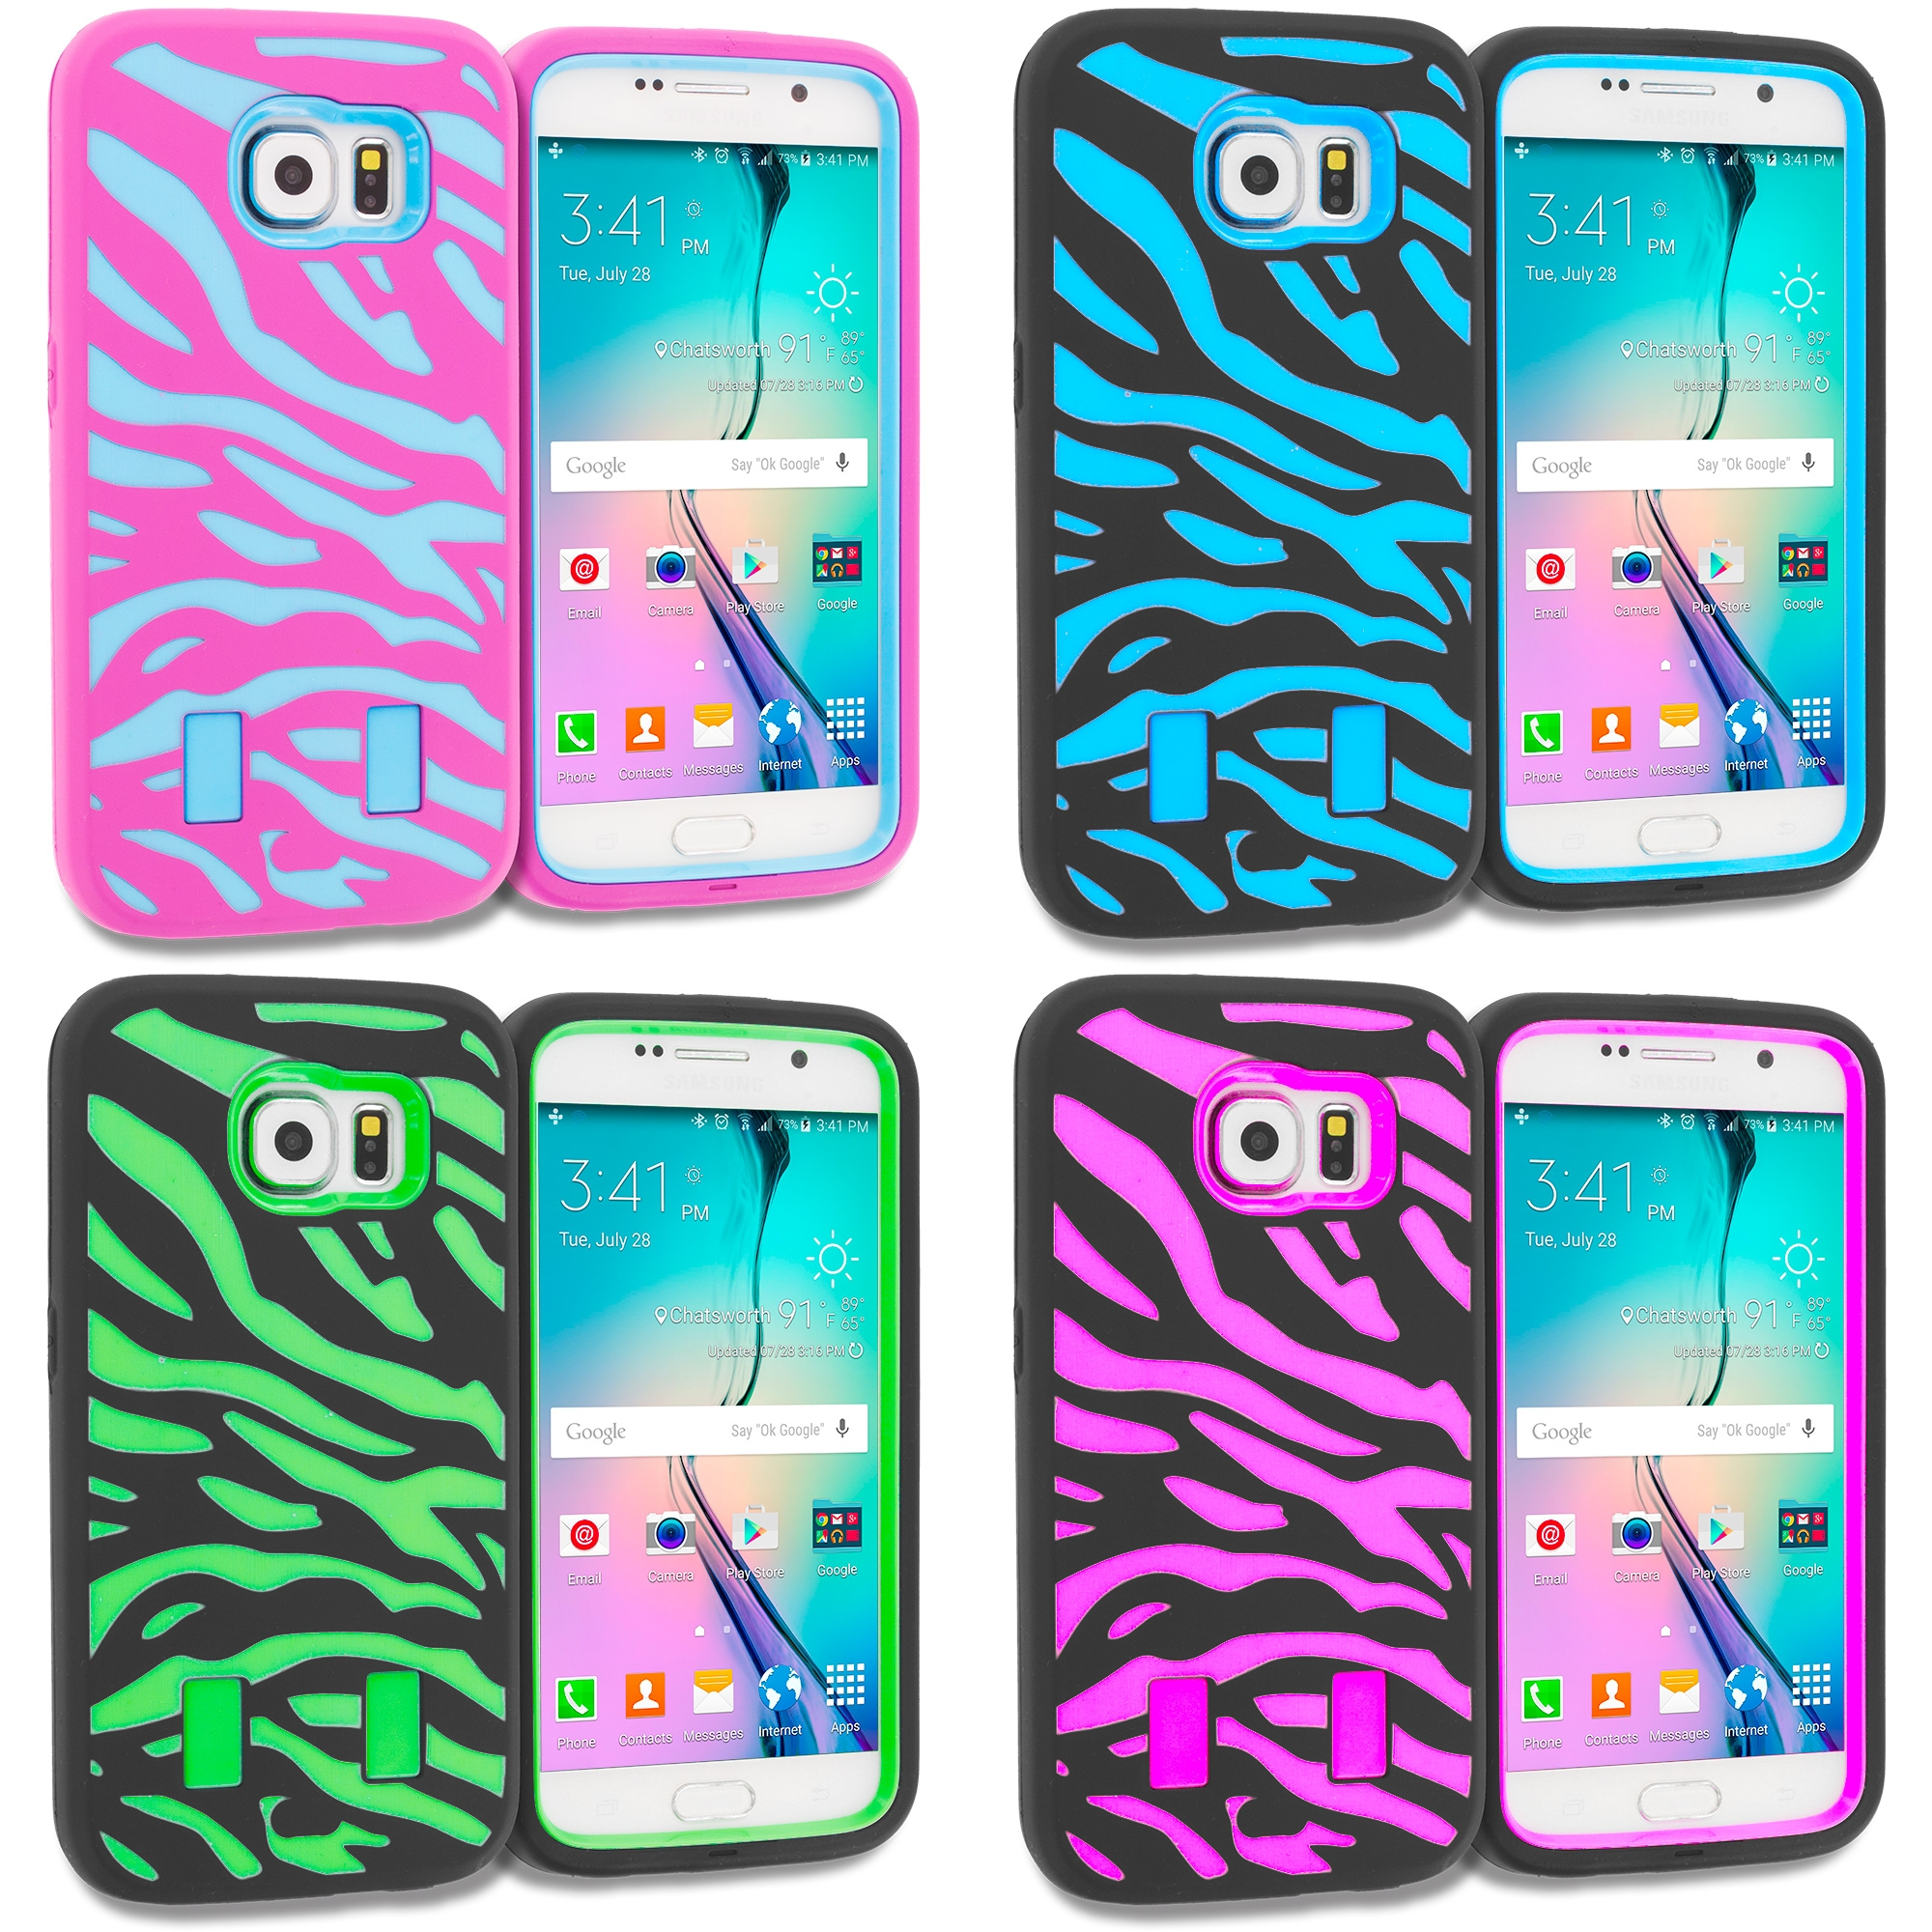 Samsung Galaxy S6 4 in 1 Combo Bundle Pack - Hybrid Zebra Hard/Soft Case Cover